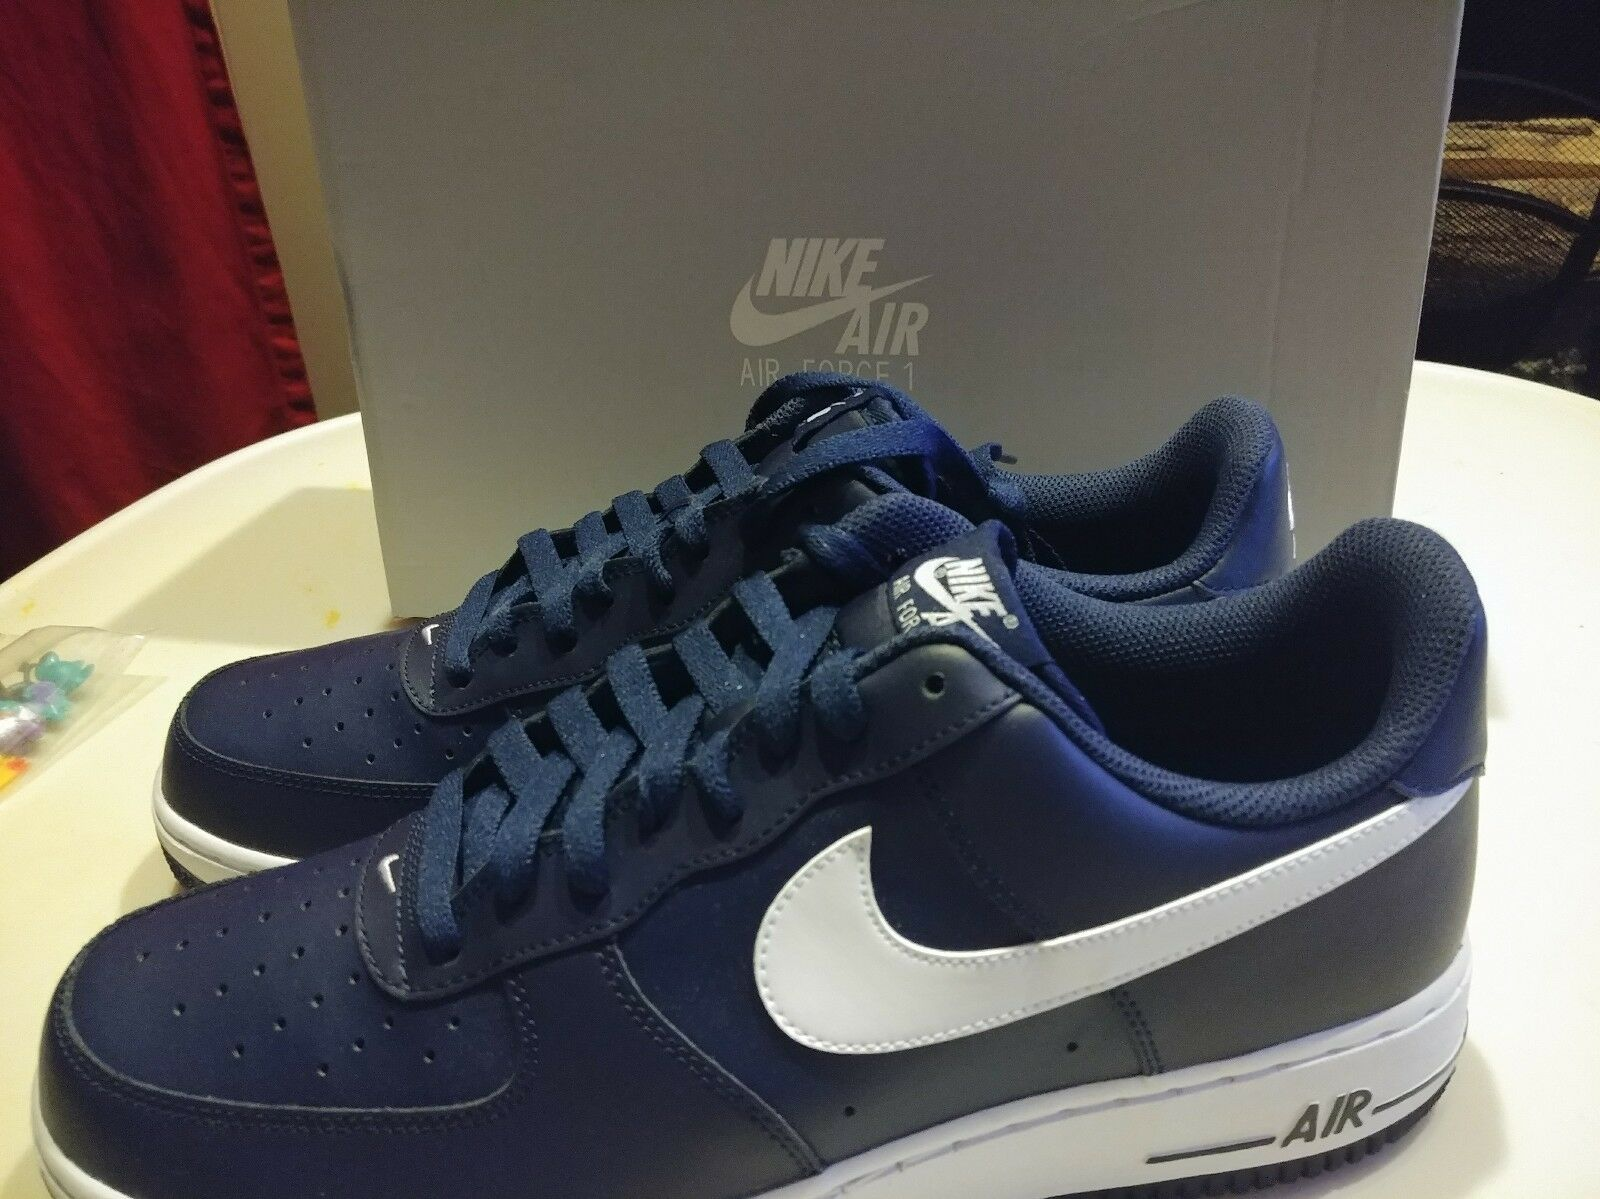 New in box Nike Air Force 1 one  488298 436 Midnight Navy/White  Comfortable